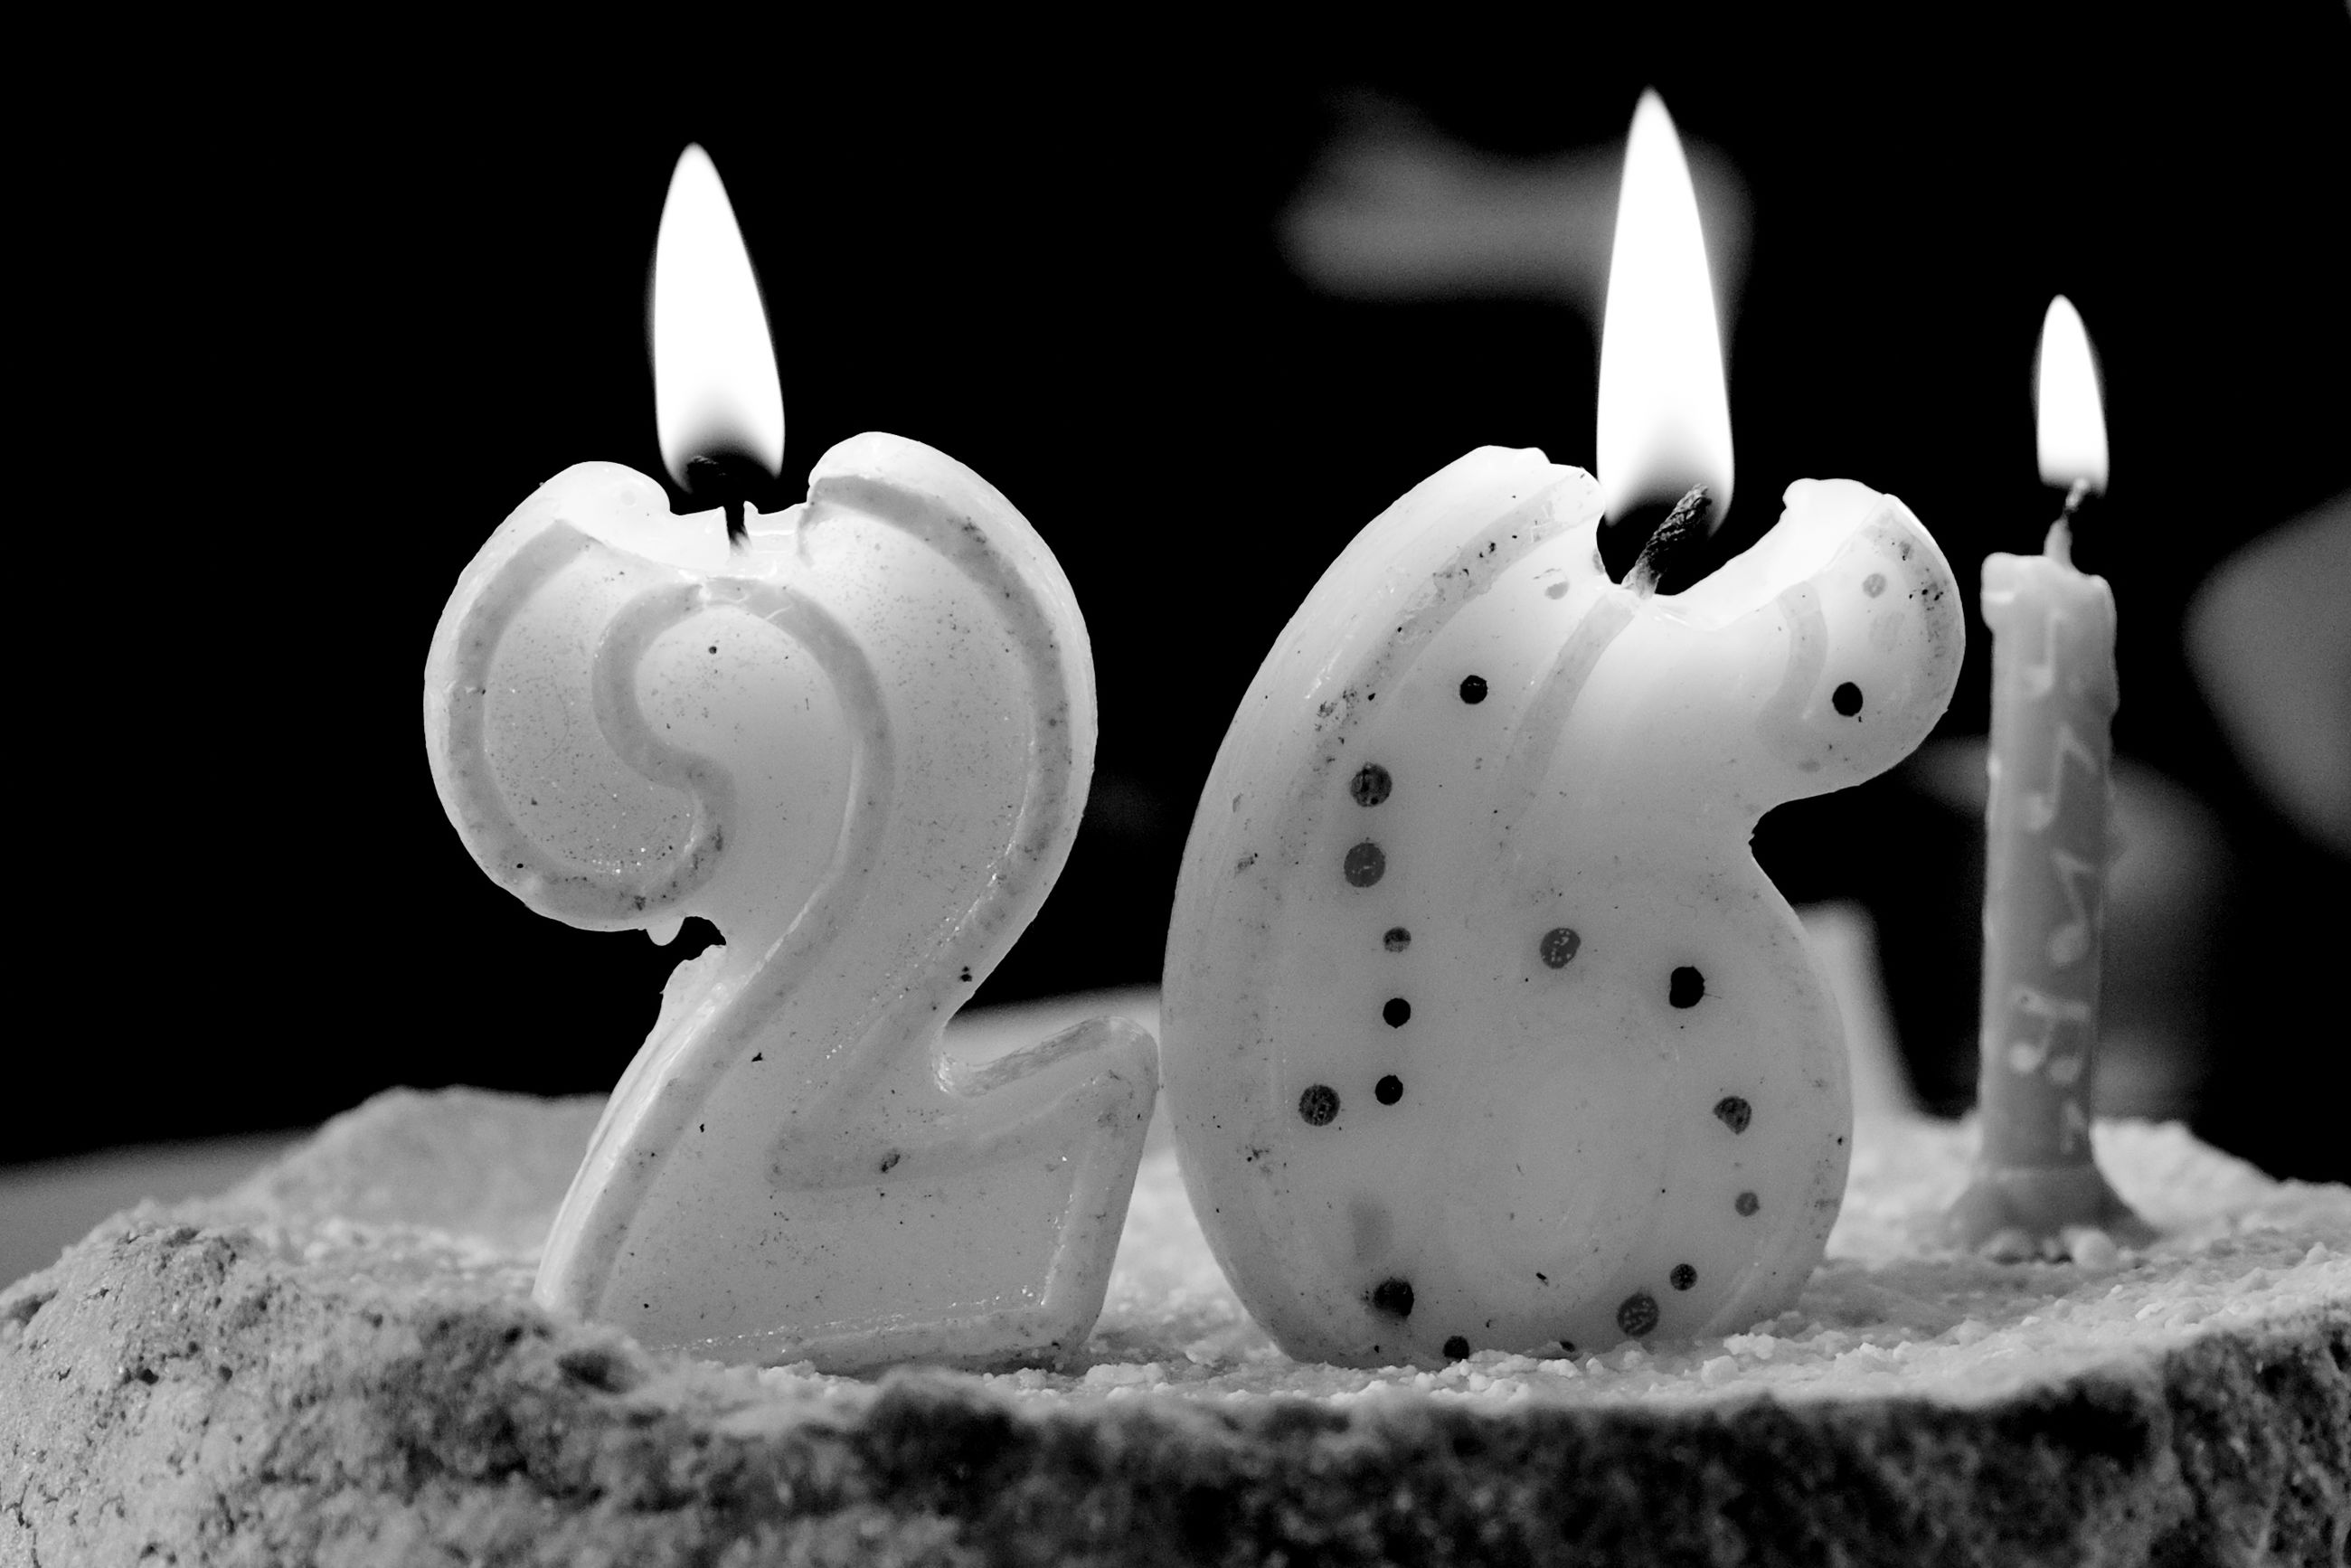 flame, candle, burning, heat - temperature, close-up, black background, melting, no people, celebration, birthday candles, birthday cake